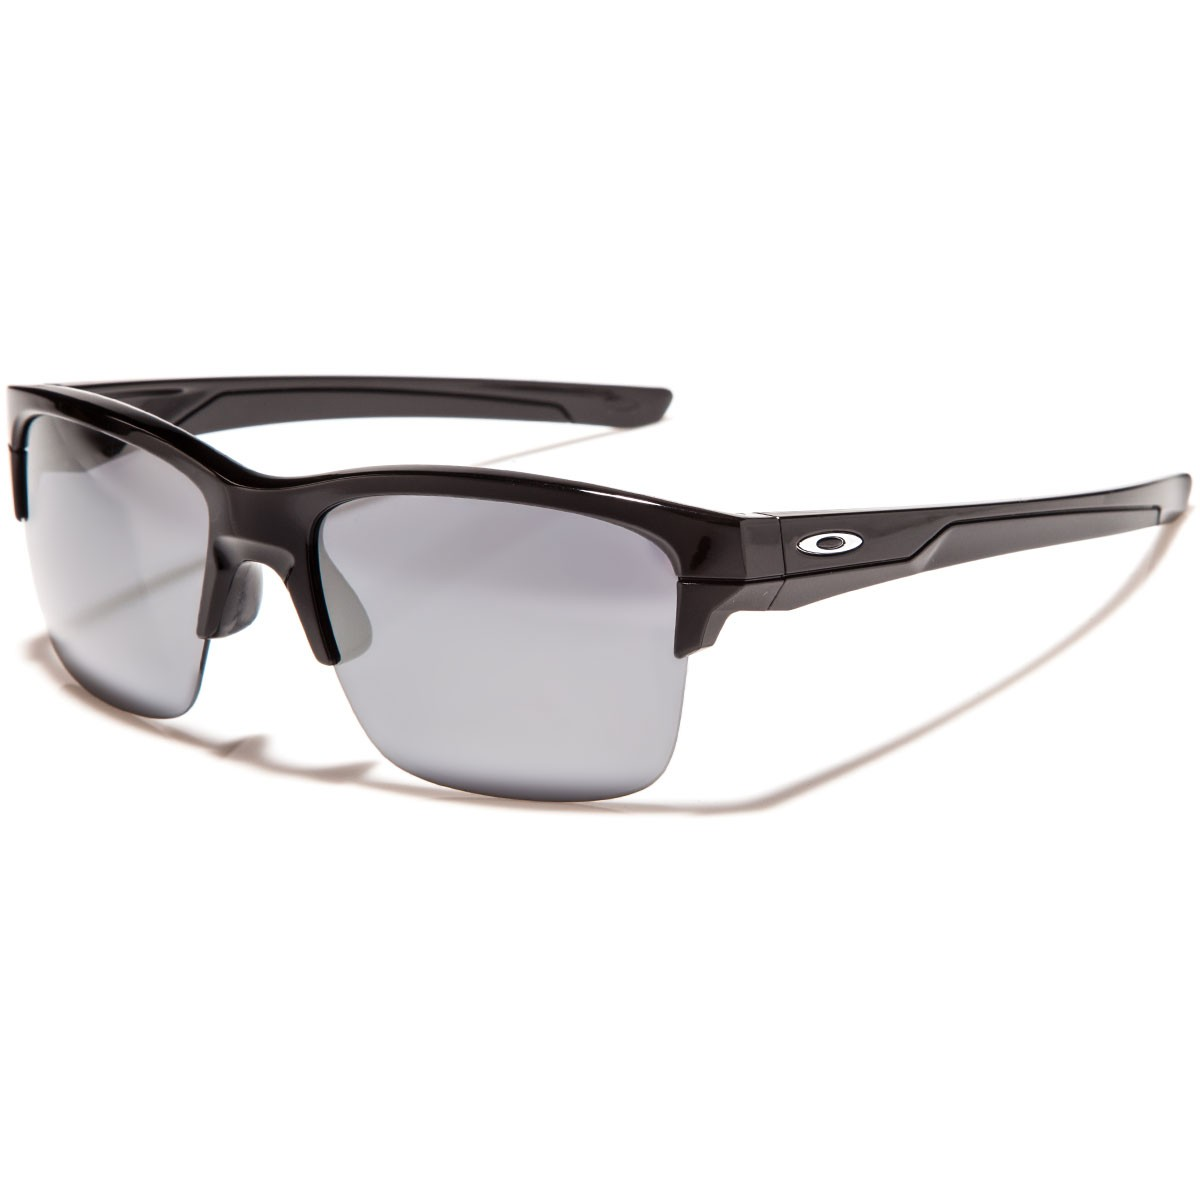 Oakley Thinlink Sunglasses - Polished Black/Black Iridium